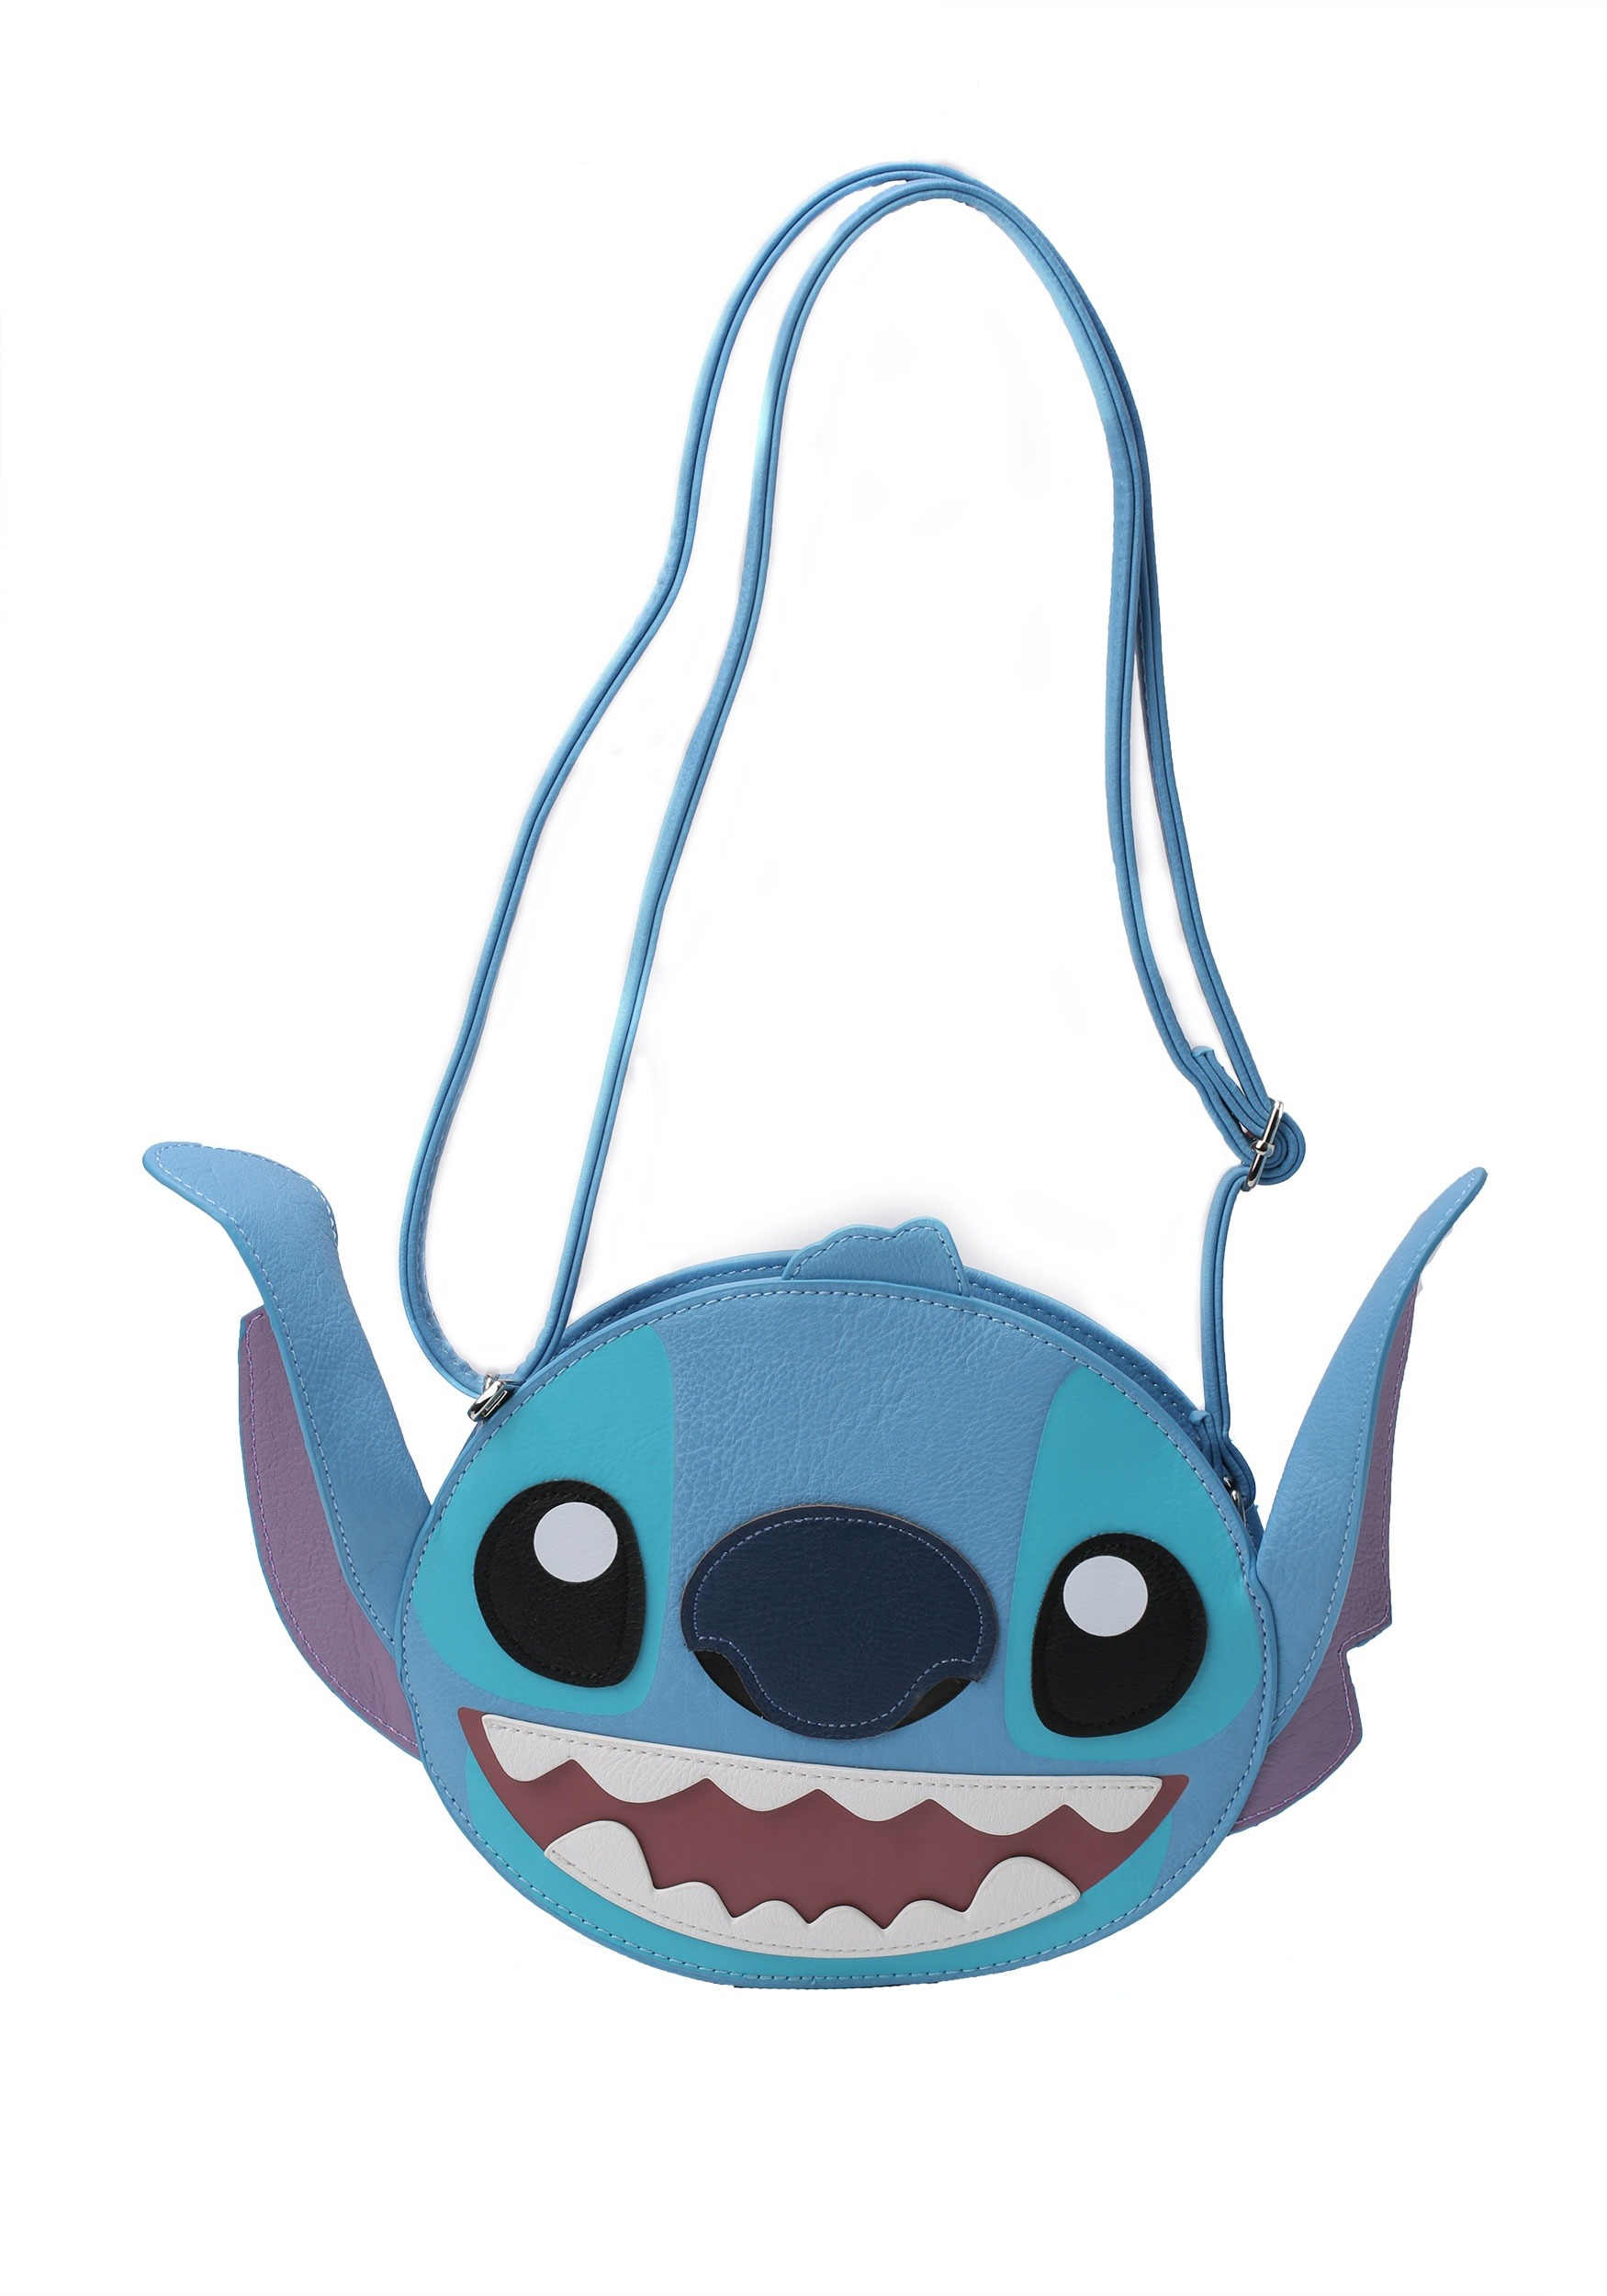 c514389c9a85 Disney Lilo and Stitch Stitch Face Faux Leather Cross Body Bag